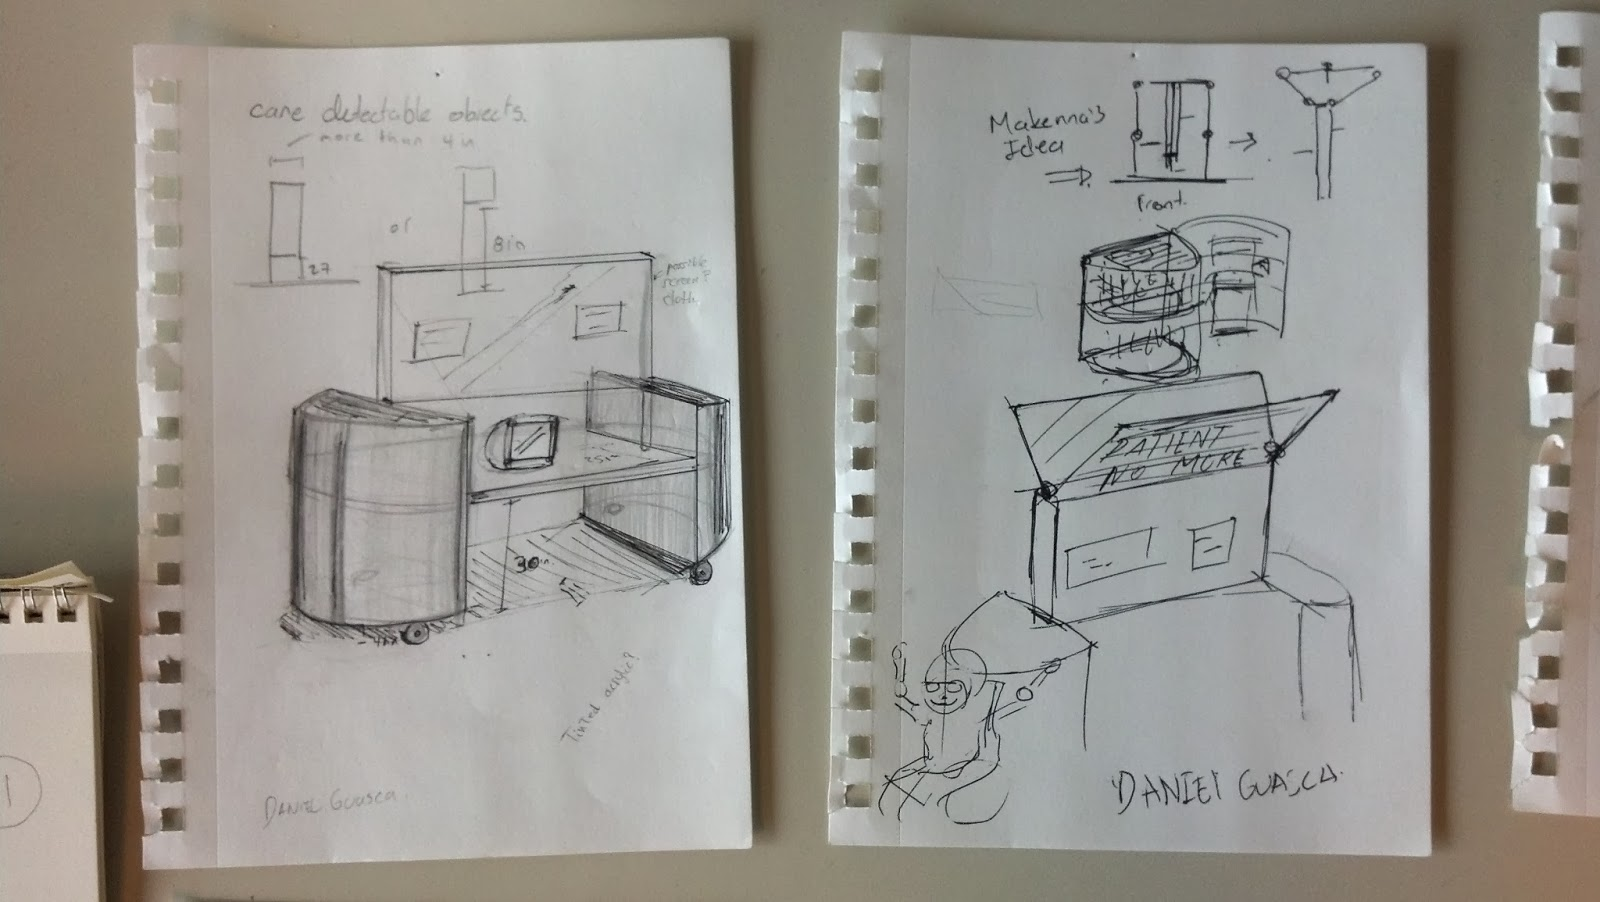 Image shows two pages pinned to a wall. Within them are sketch ideations of exhibit display concepts. Features are also included such as angled top panels for people viewing from below and door concepts for the side sections of the exhibit display.